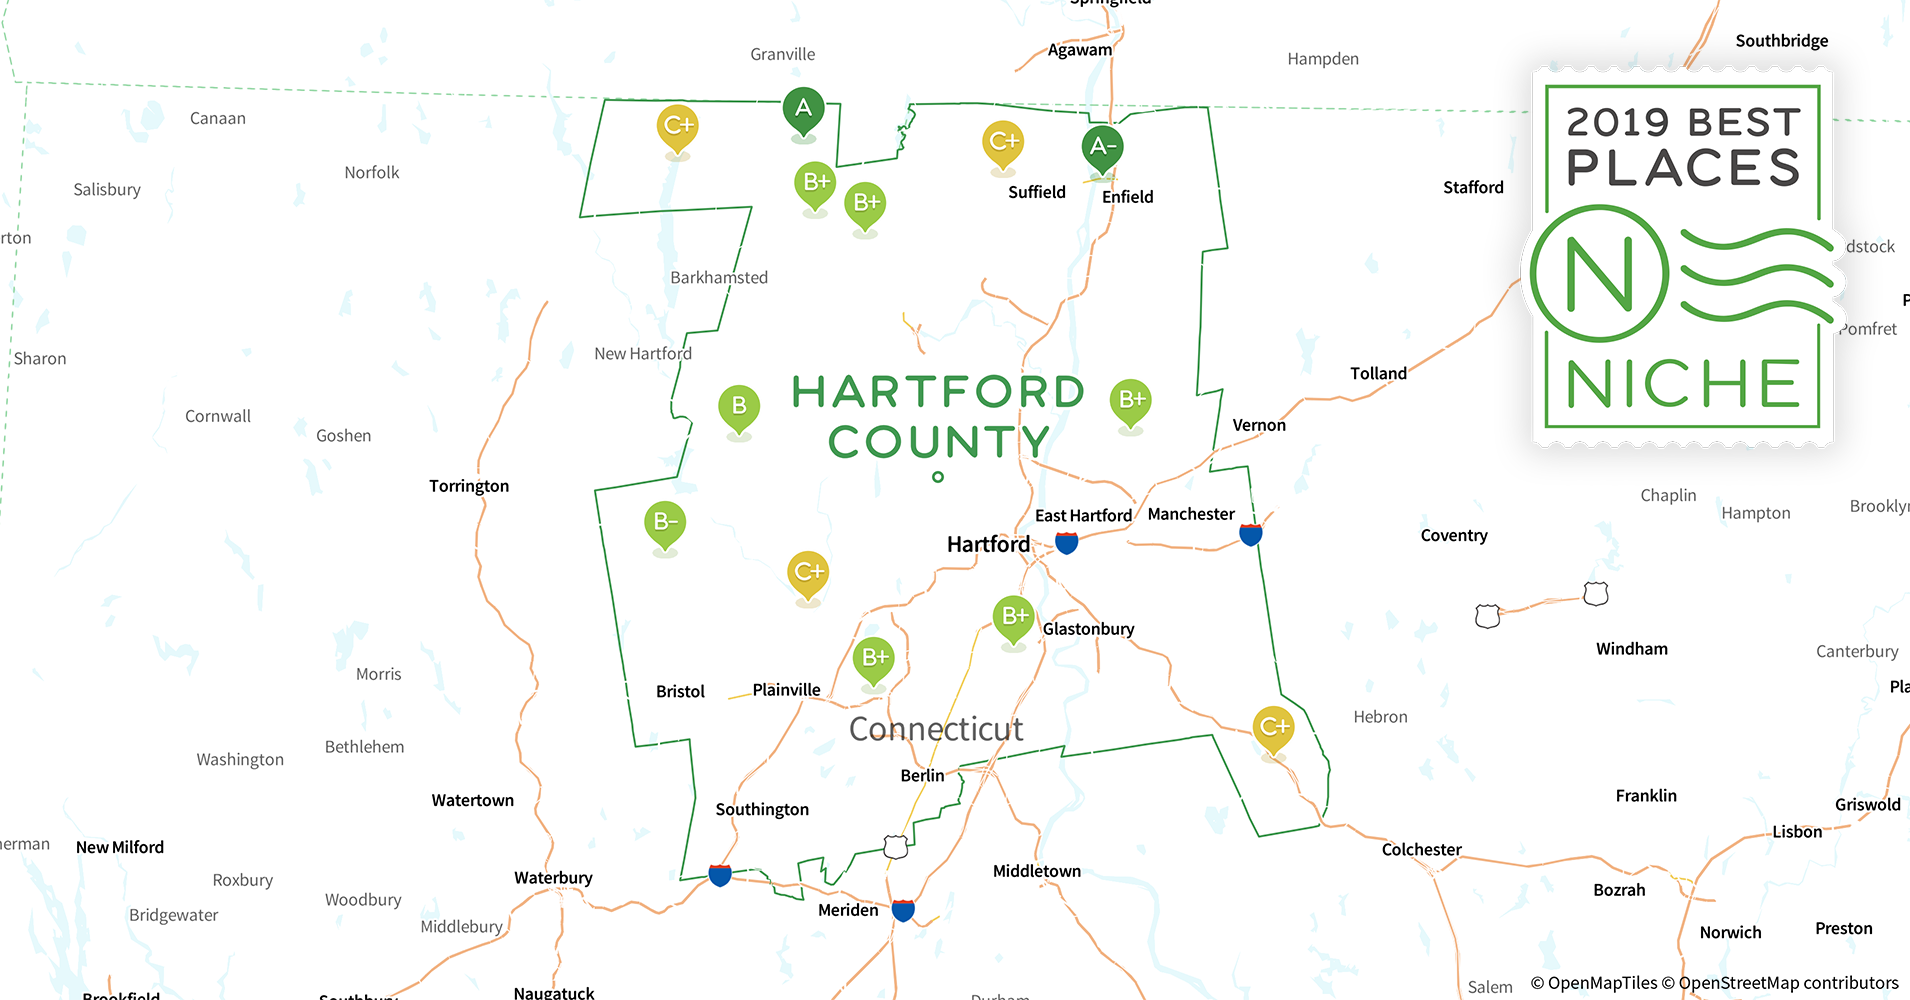 2019 Best Places to Live in Hartford County, CT - Niche